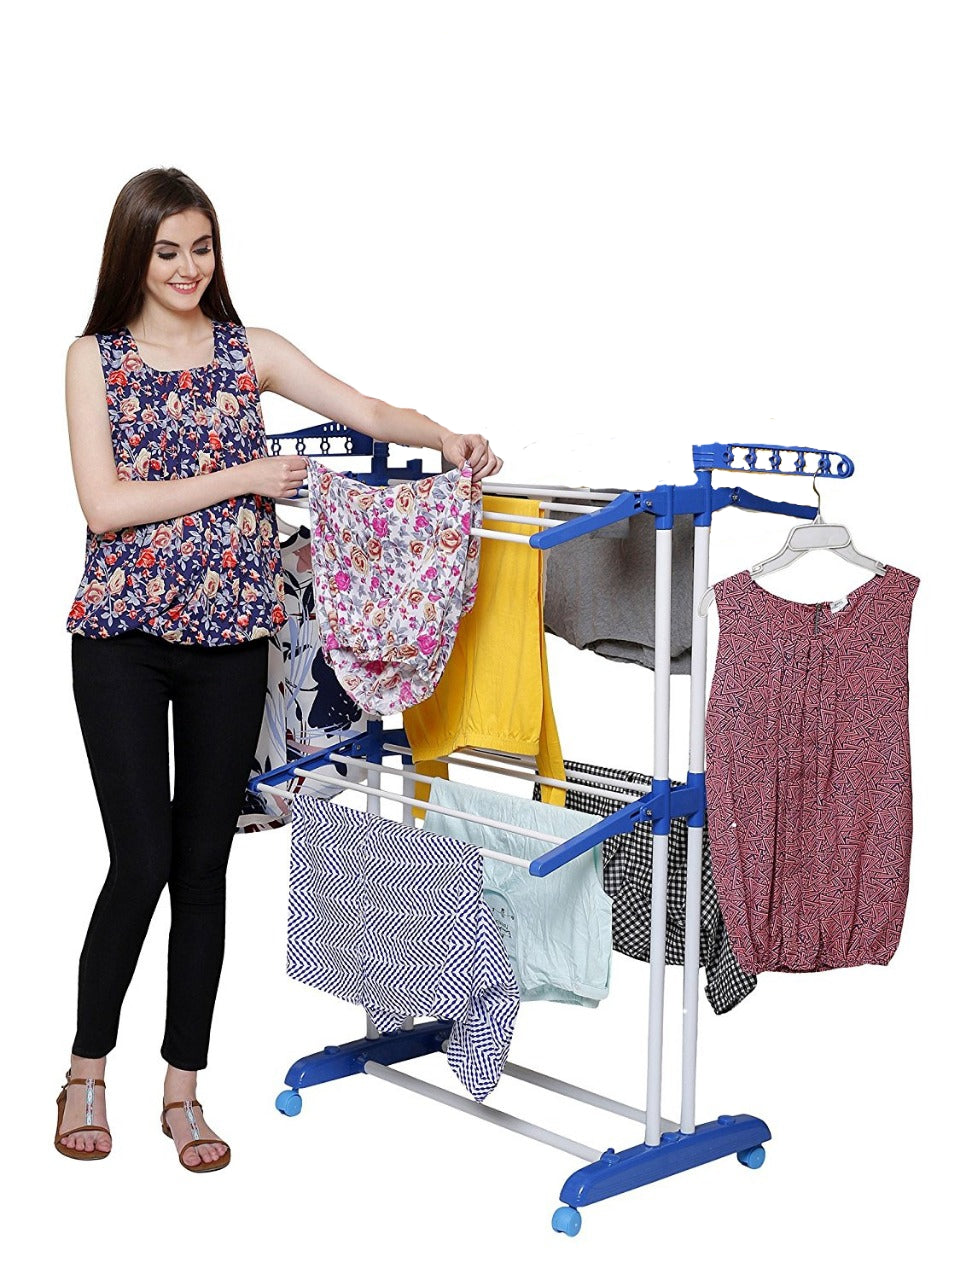 PARASNATH Prime Steel Mini Poll Clothes Drying Stand with Breaking Wheel System- Made in India - PARASNATH